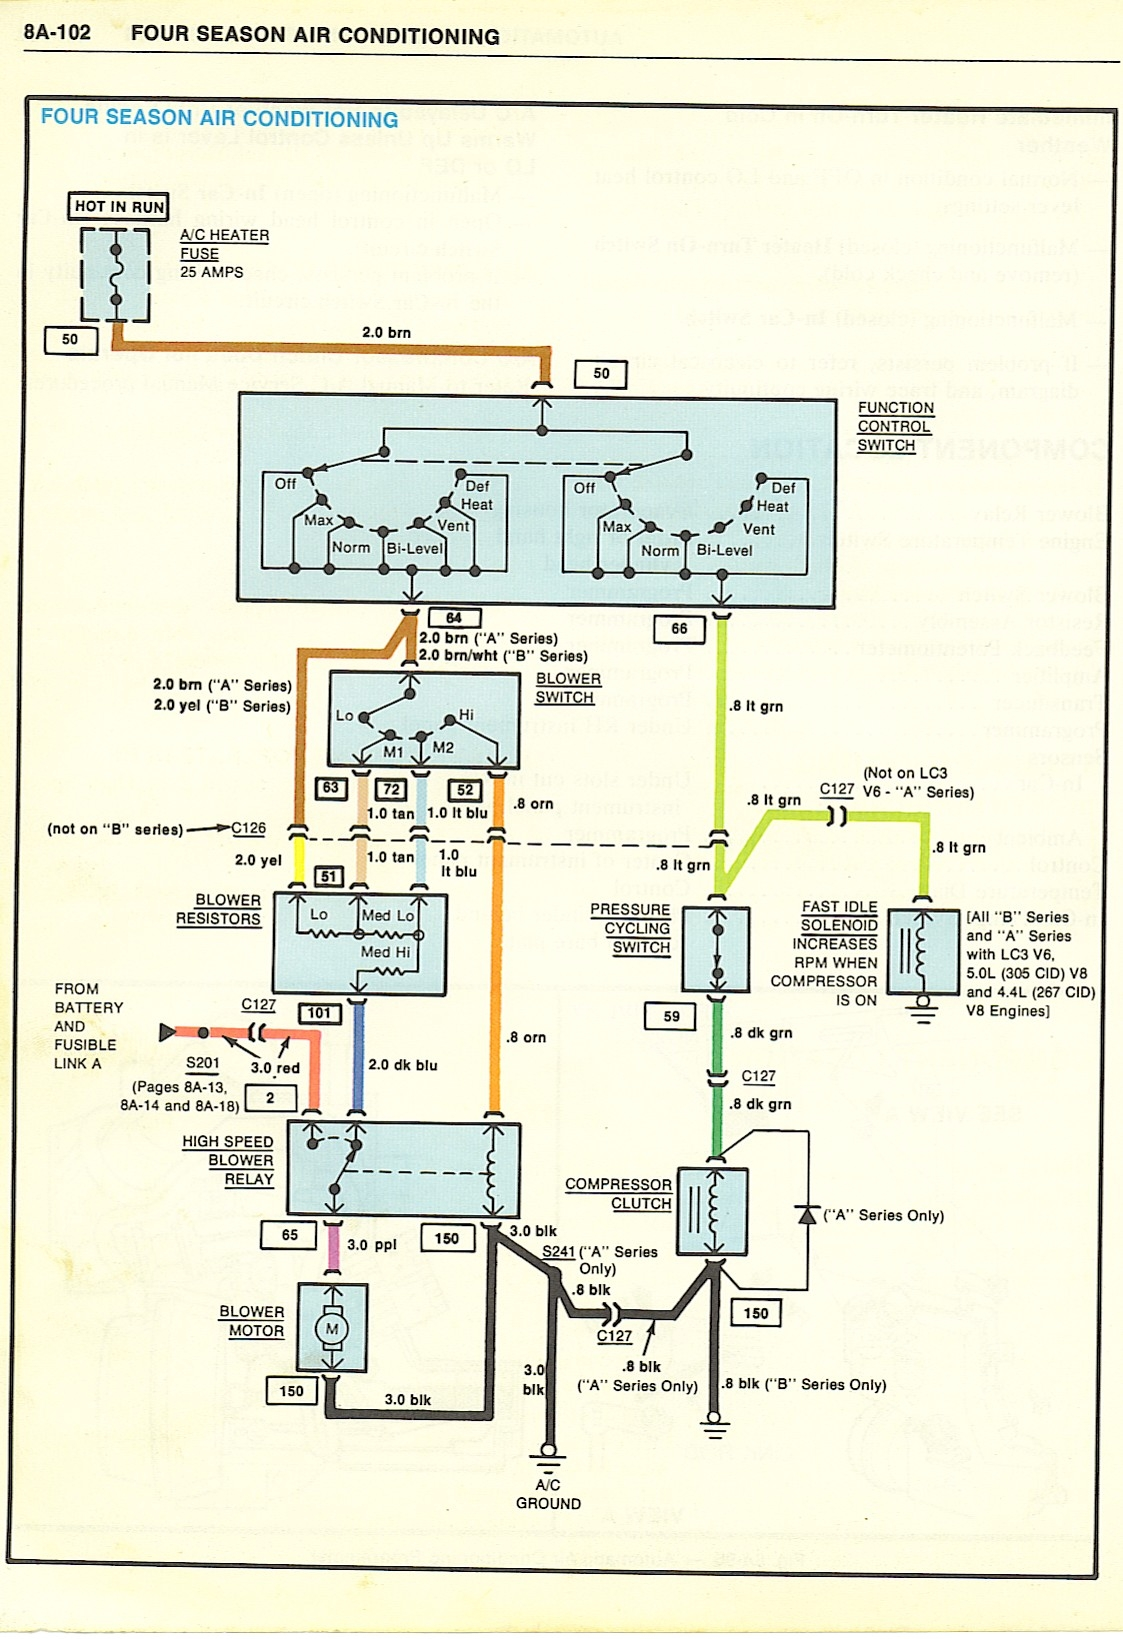 1968 FourSeasonAirConditioner chevy diagrams ac wiring diagram at creativeand.co